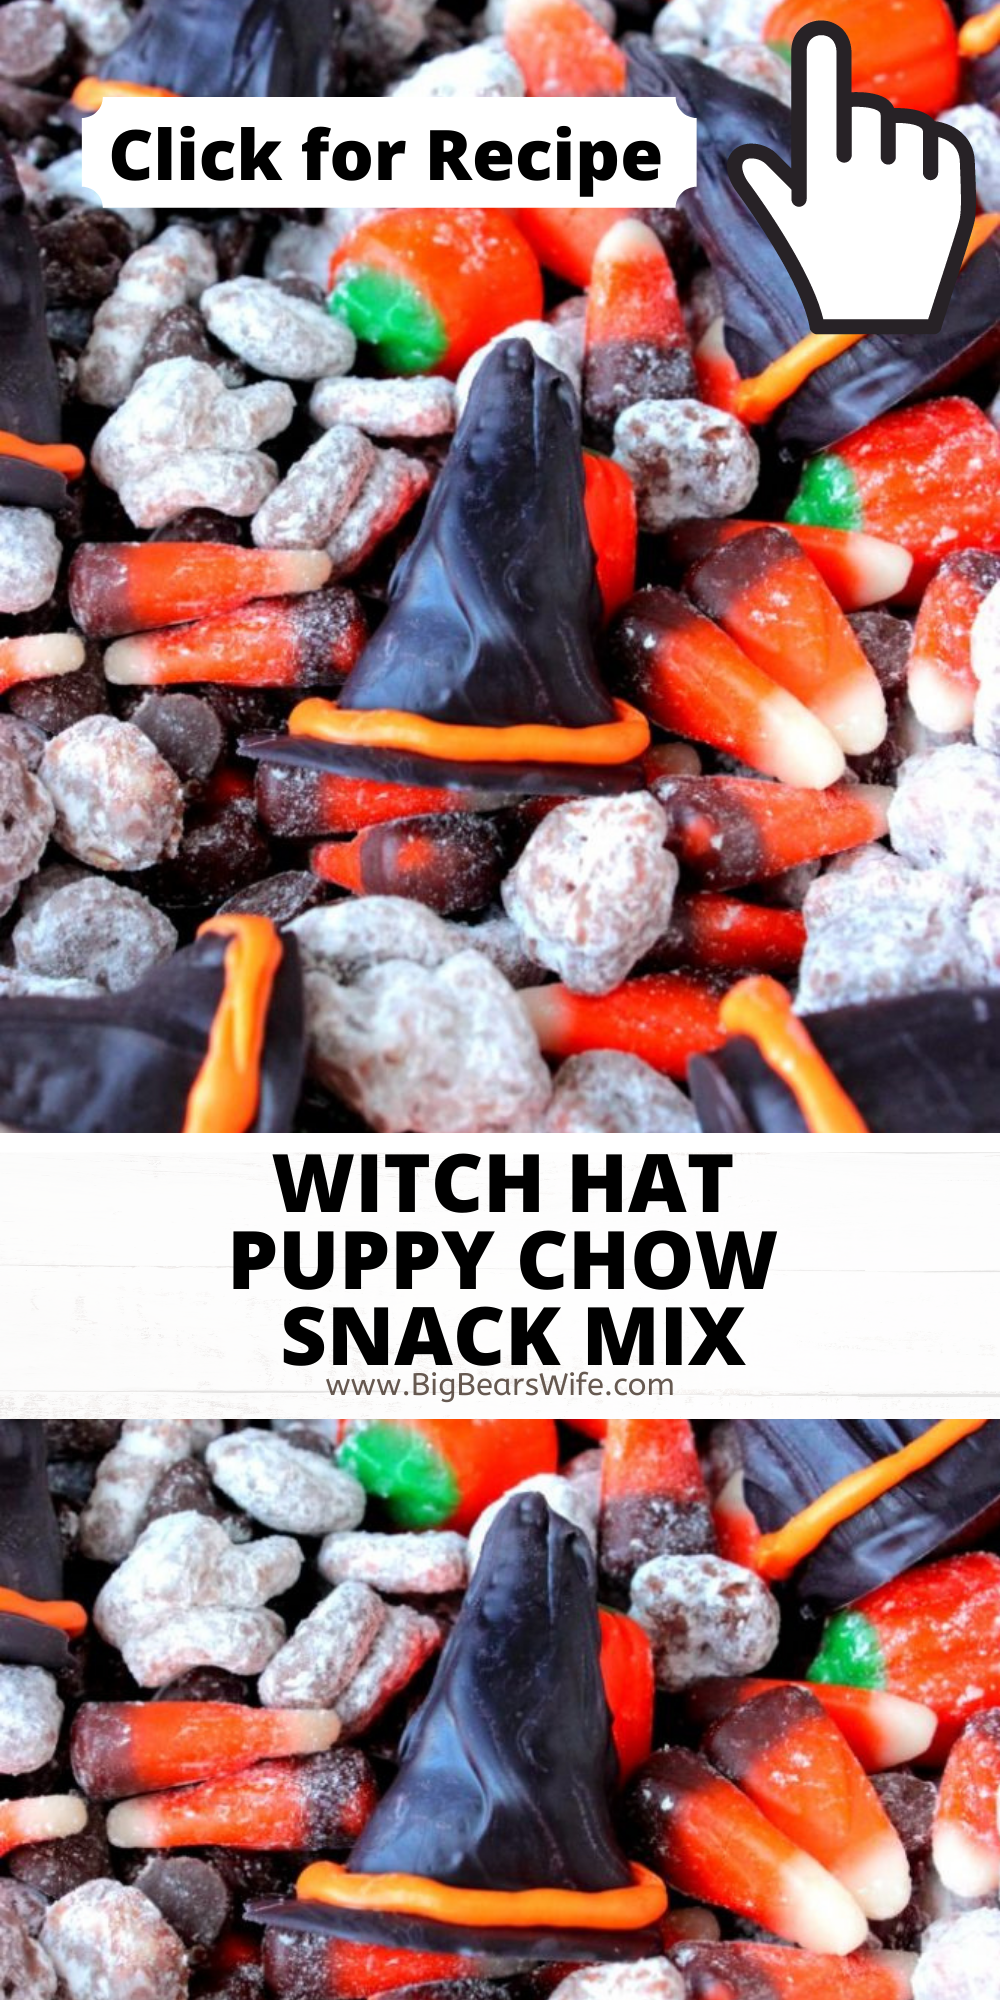 Share this spooky snack with the Halloween witches in your life! This Witch Hat Puppy Chow Snack is packed with Halloween cereal, candy and chocolate witch hats! This is a super cute Halloween treat recipe that is all about witches. Everyone will love this super cute Halloween Chex Mix Recipe! Halloween Muddy Buddy Recipe and more on BigBearsWife.com